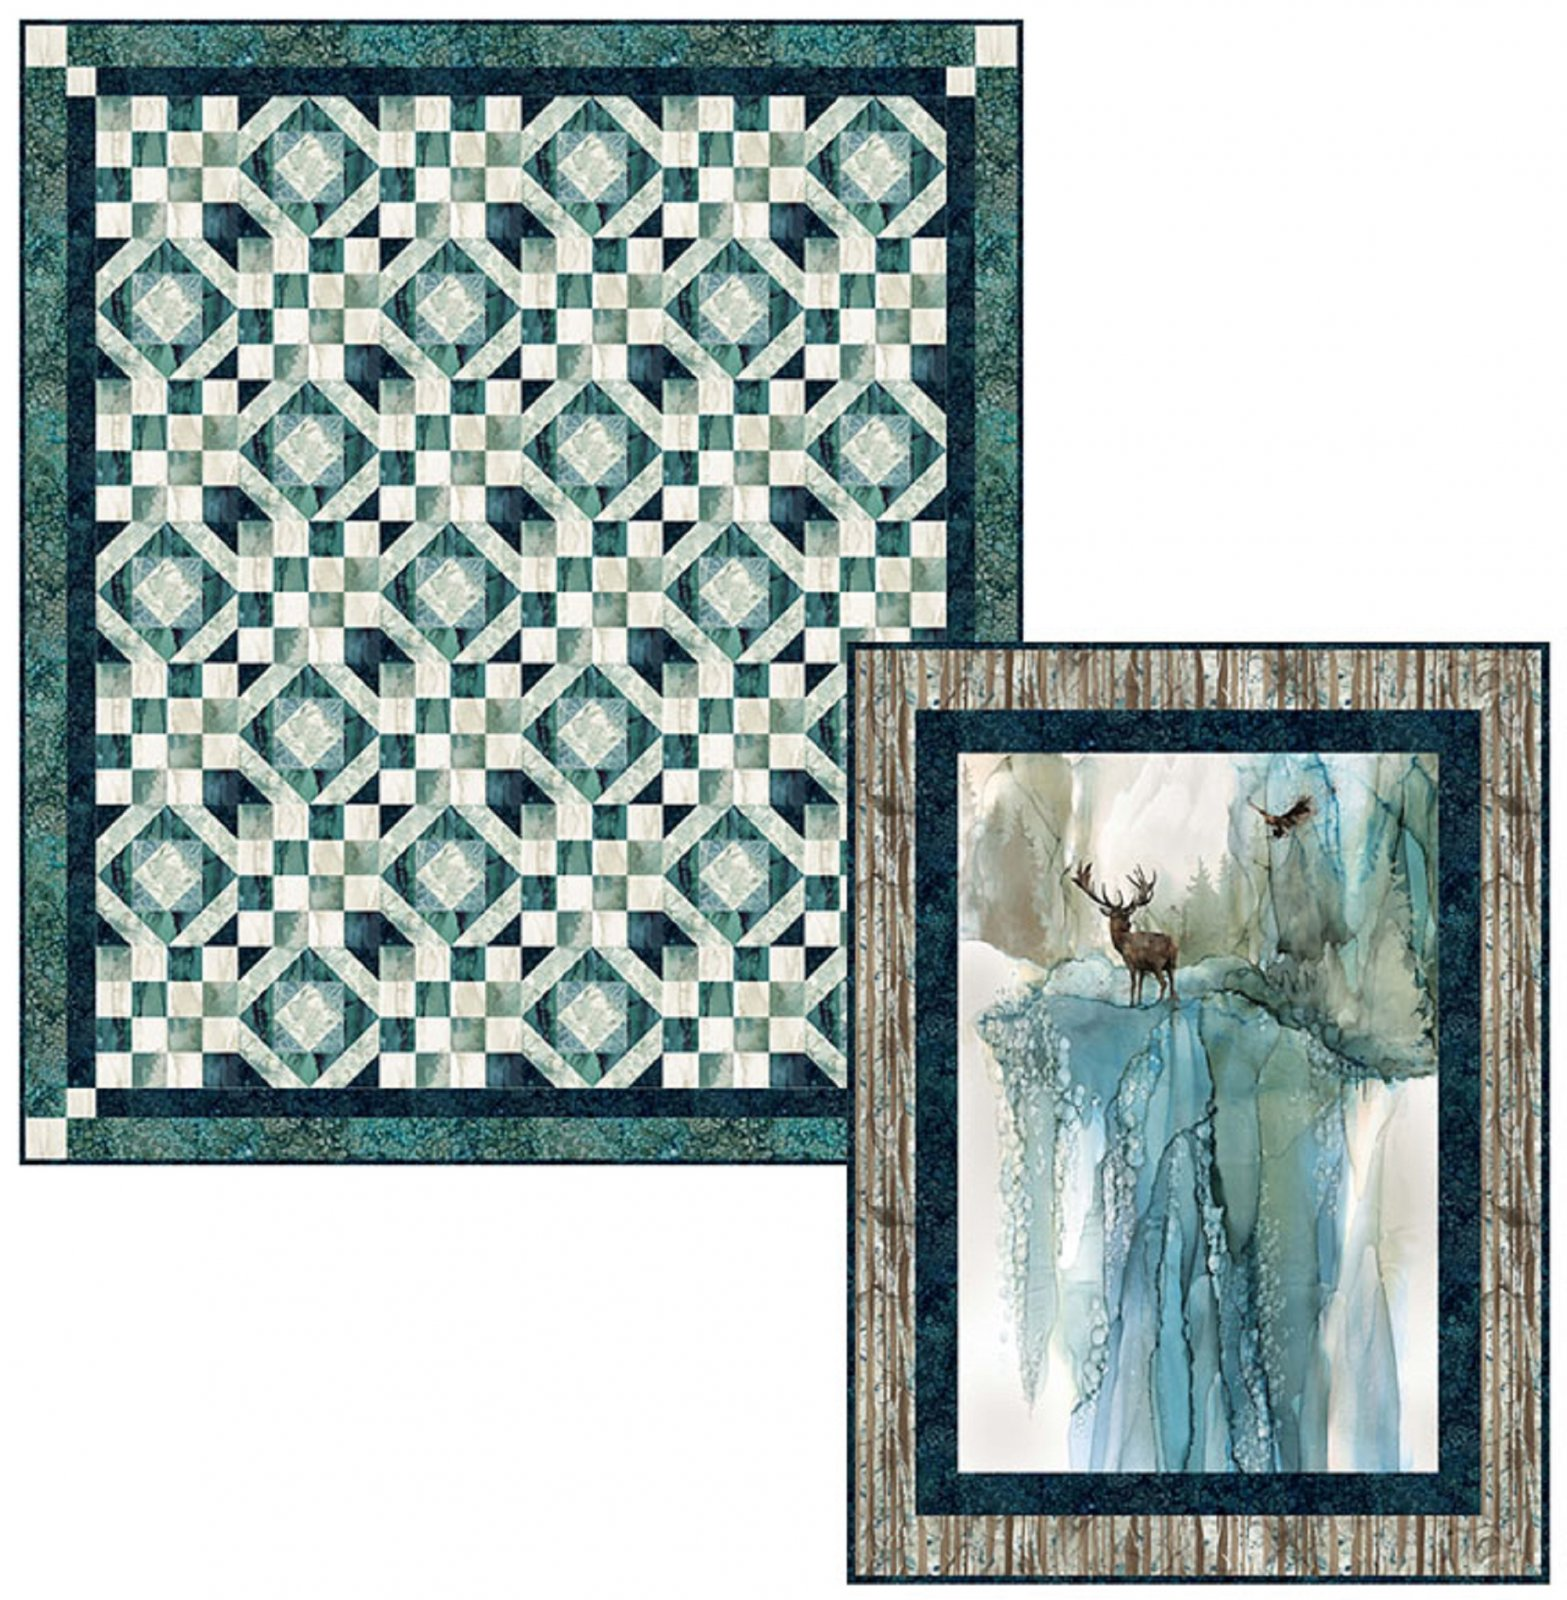 Peaceful View / Walk in the Woods Quilt Pattern